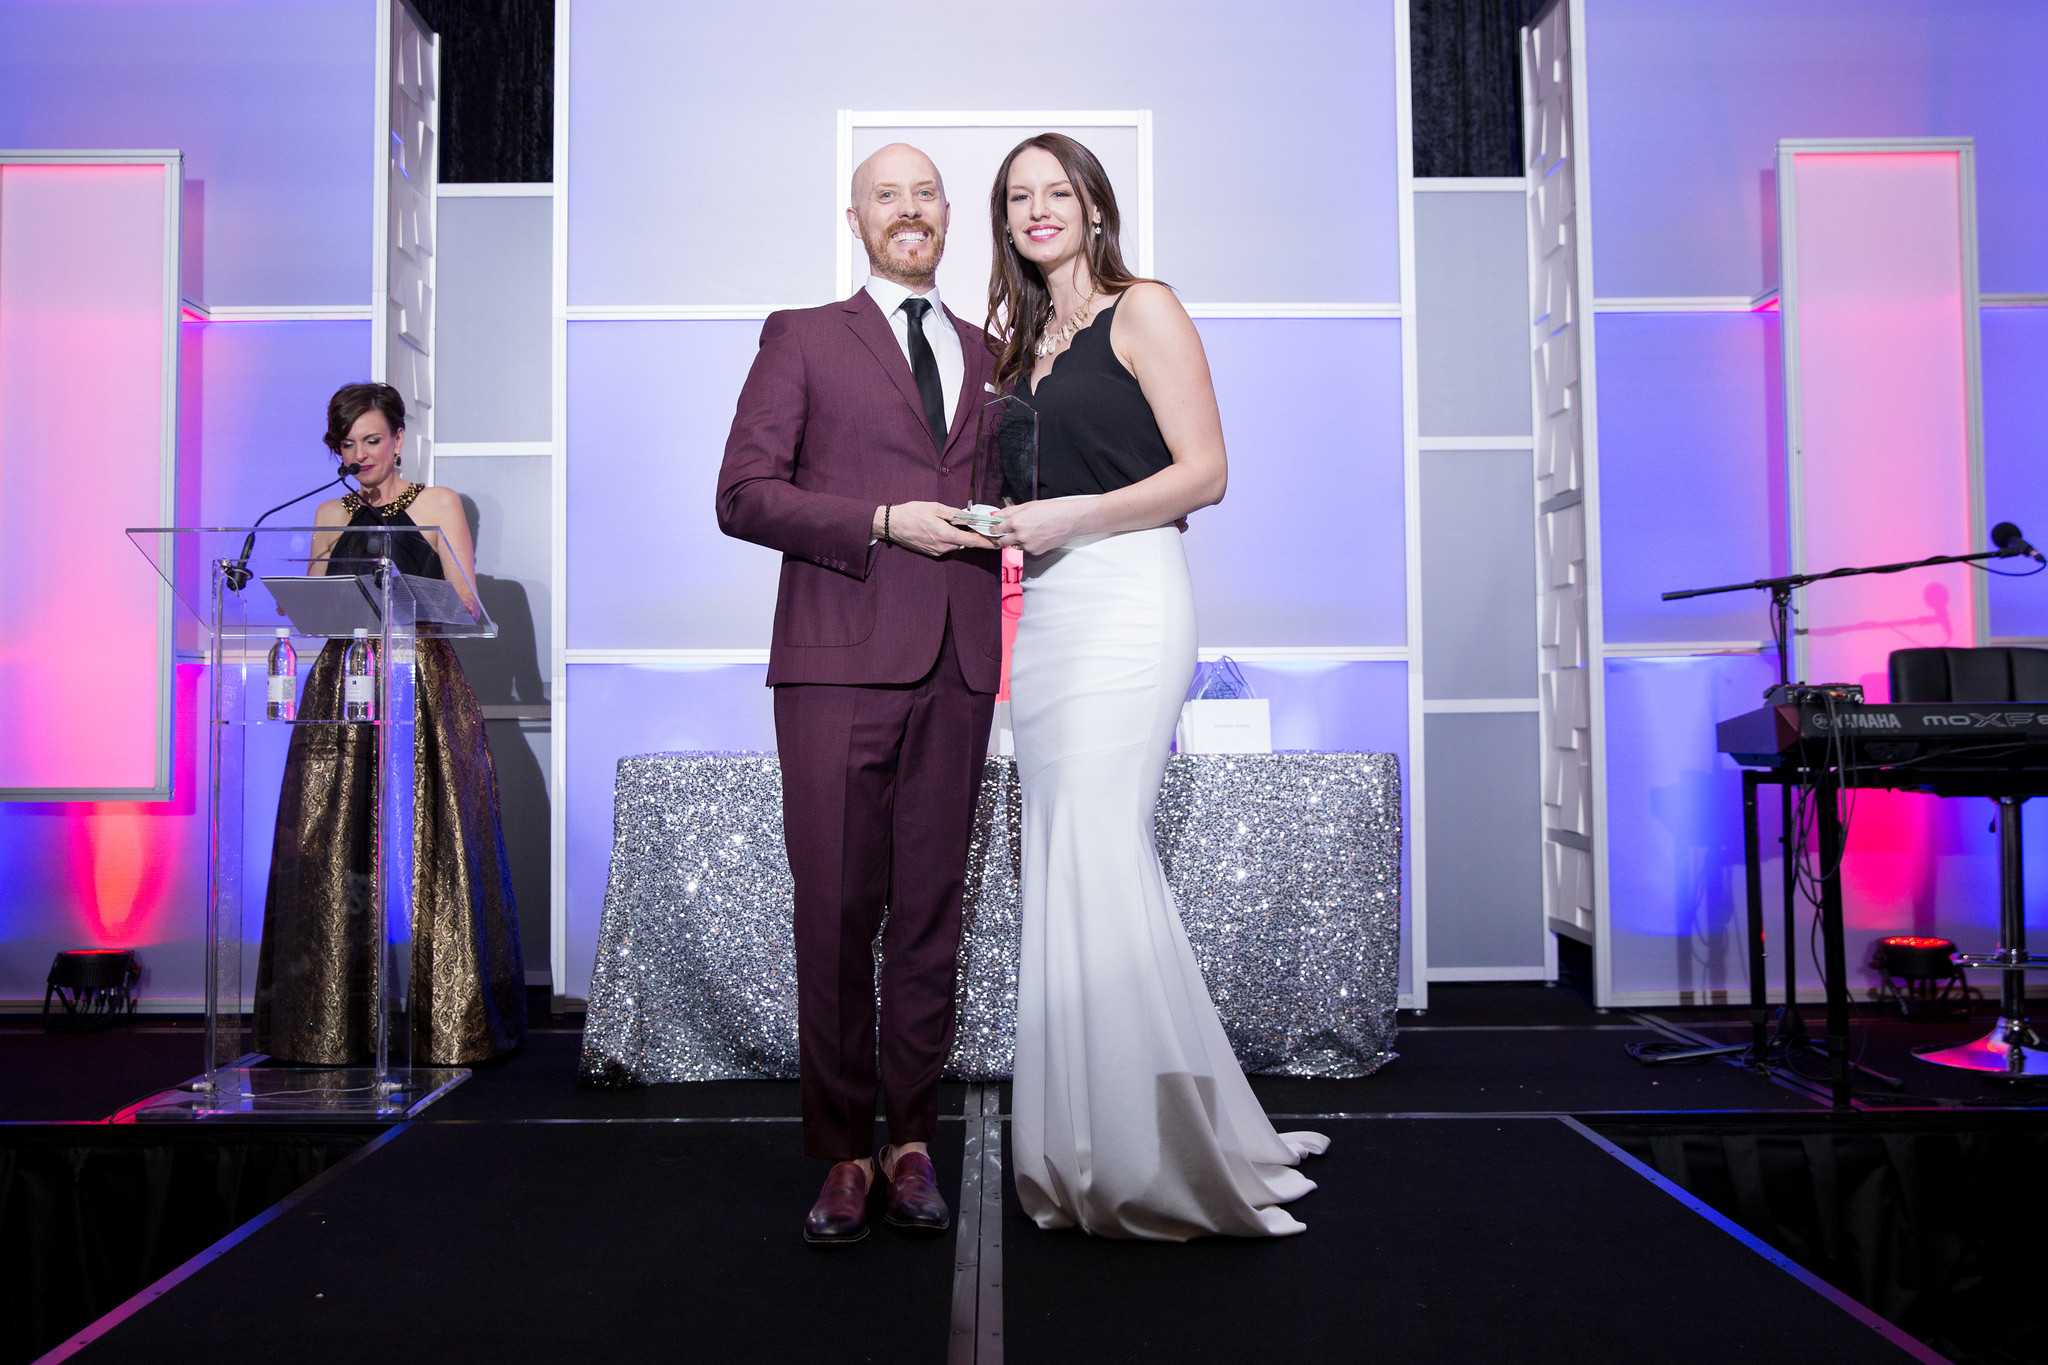 Ottawa Wedding Awards L'HEXAGONE Menswear Suits